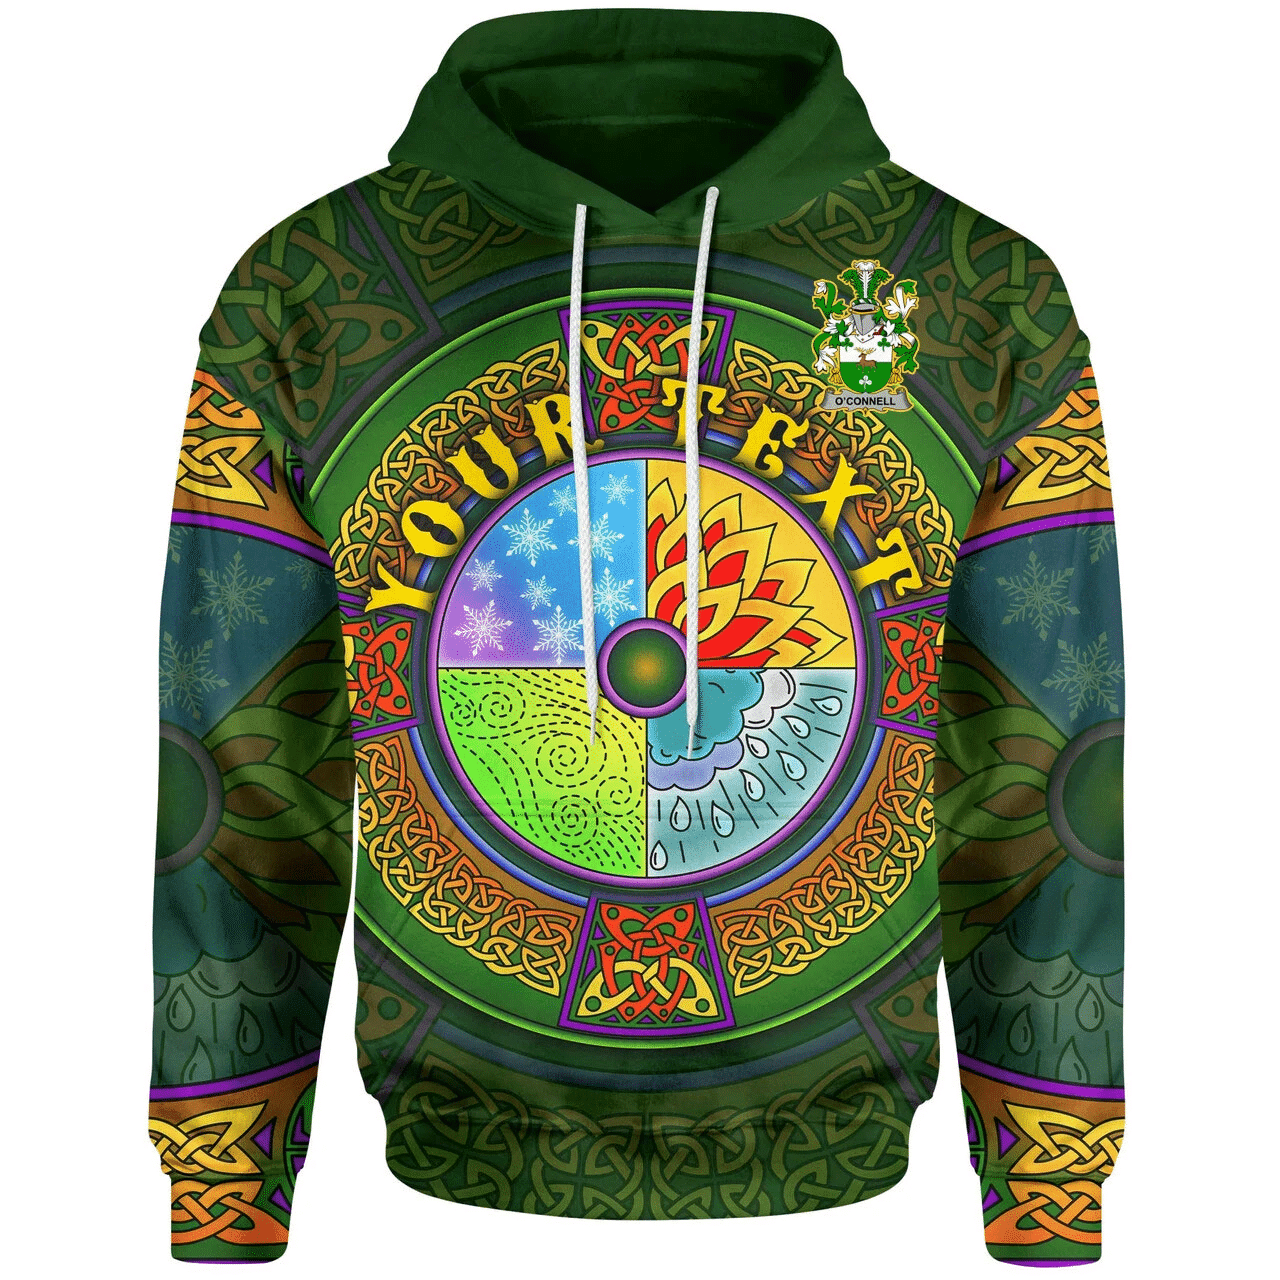 (Custom) 1stIreland Ireland Hoodie - Connell or O'Connell Irish Family Crest Hoodie - Celtic Elements A7